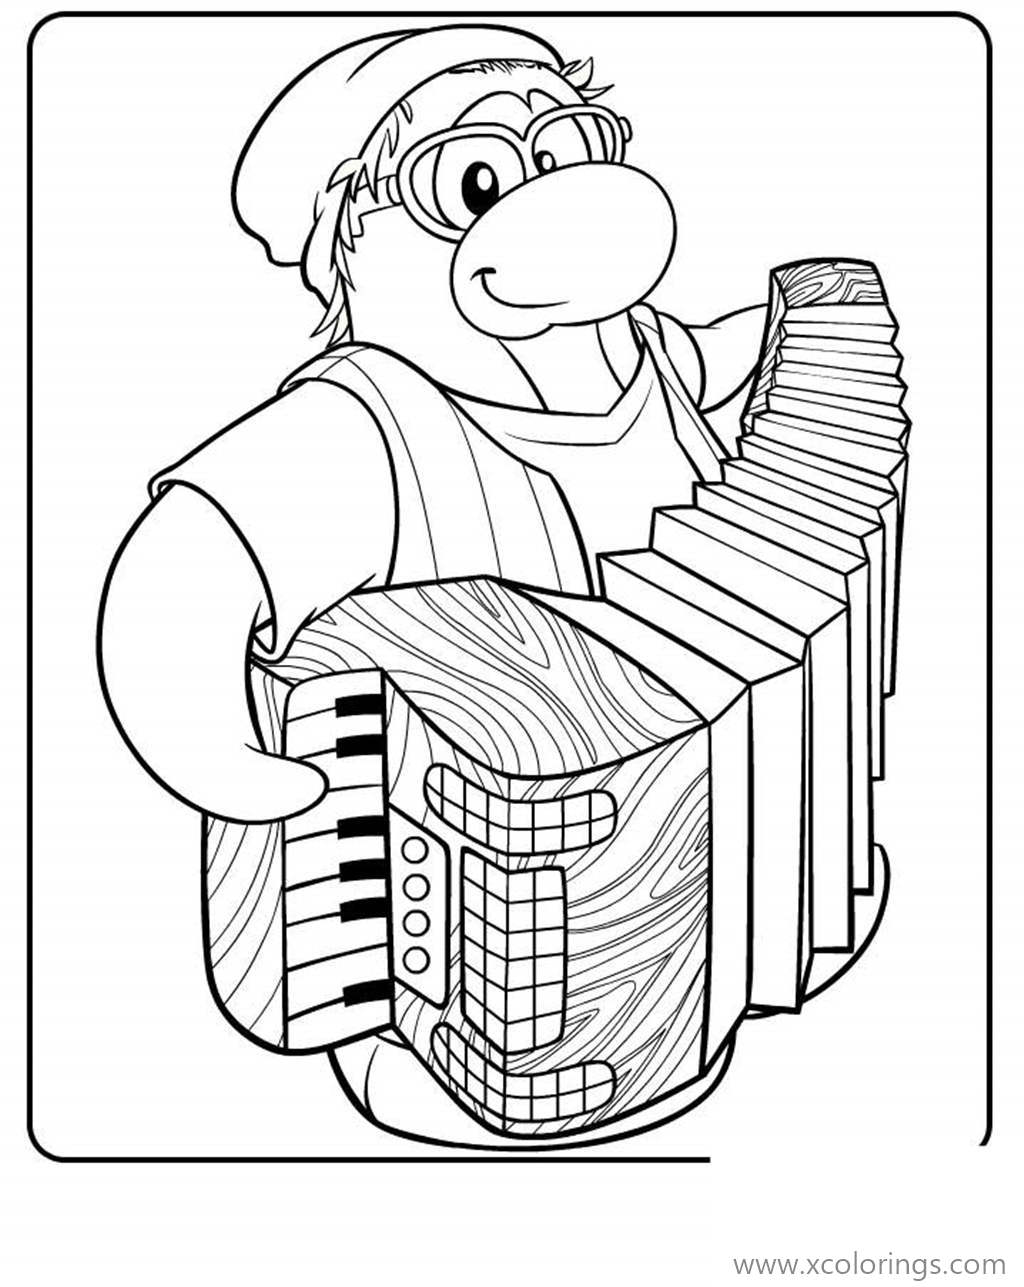 Free Club Penguin Coloring Pages Aunt Arctic printable